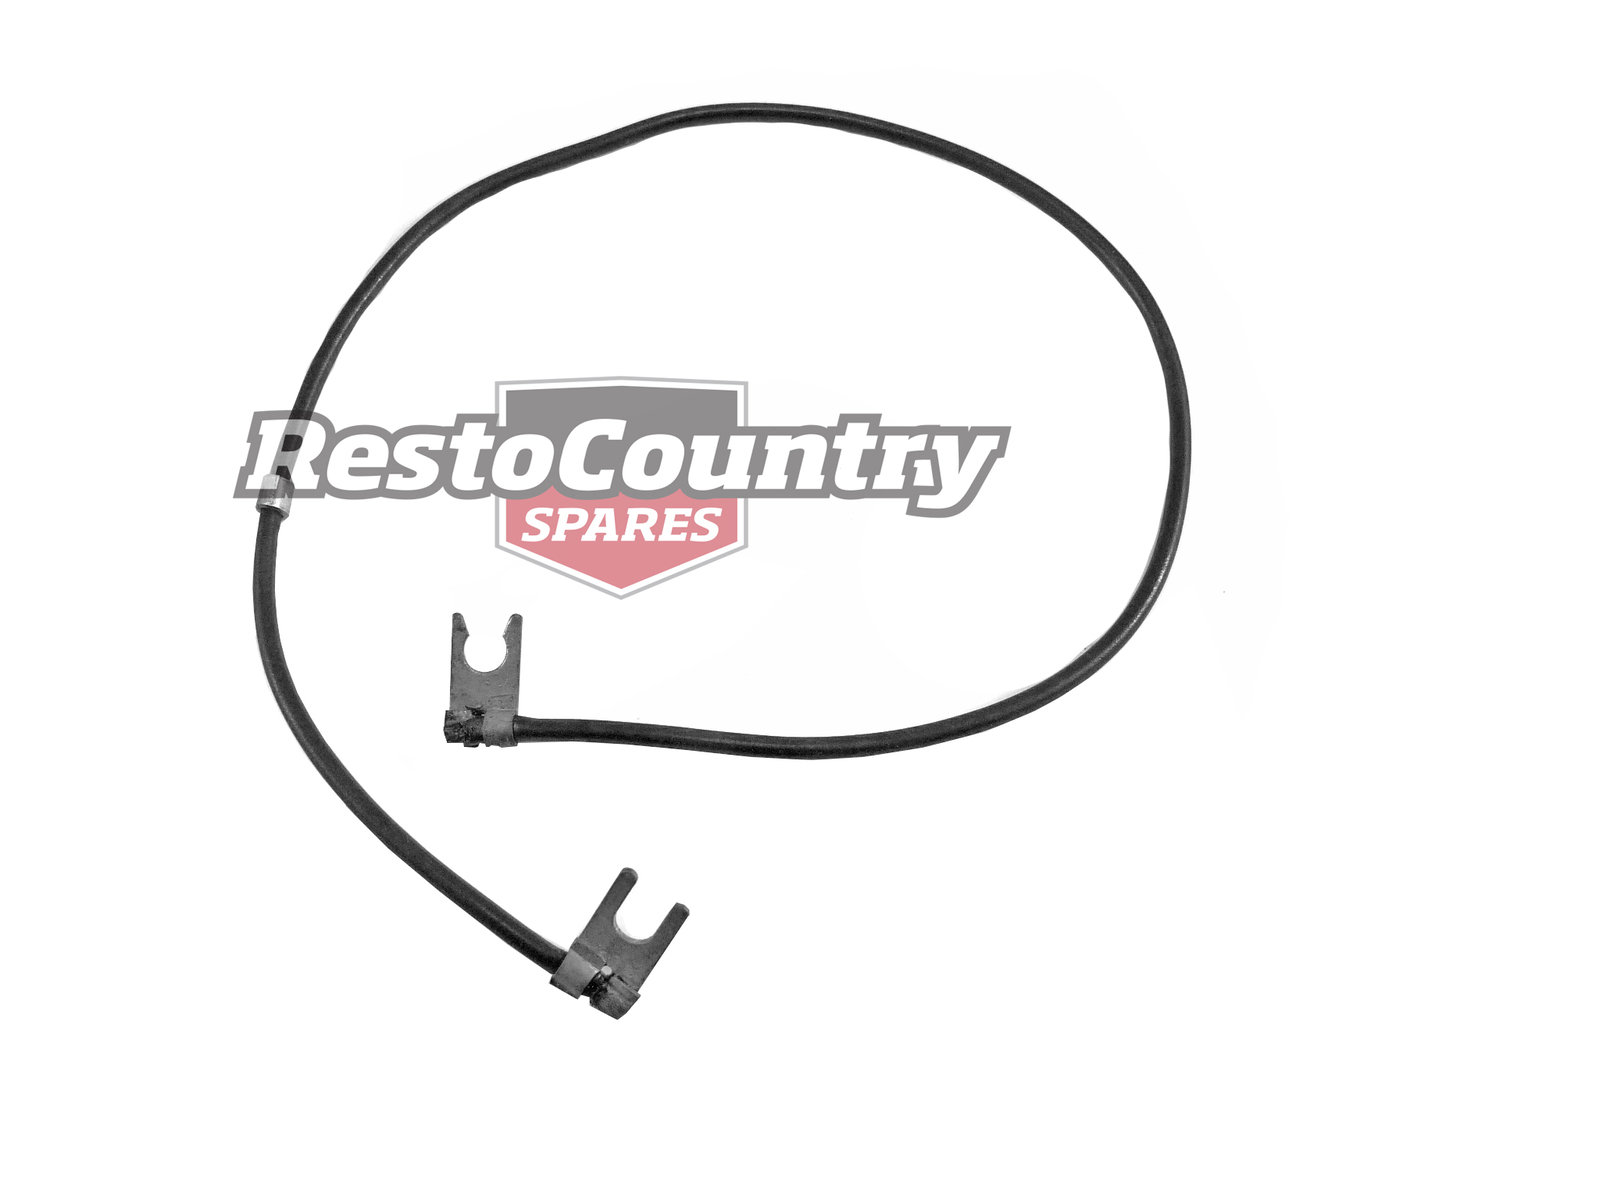 Holden Distributor Primary Lead Wire Dl 51 Chev V8 Hk Ht